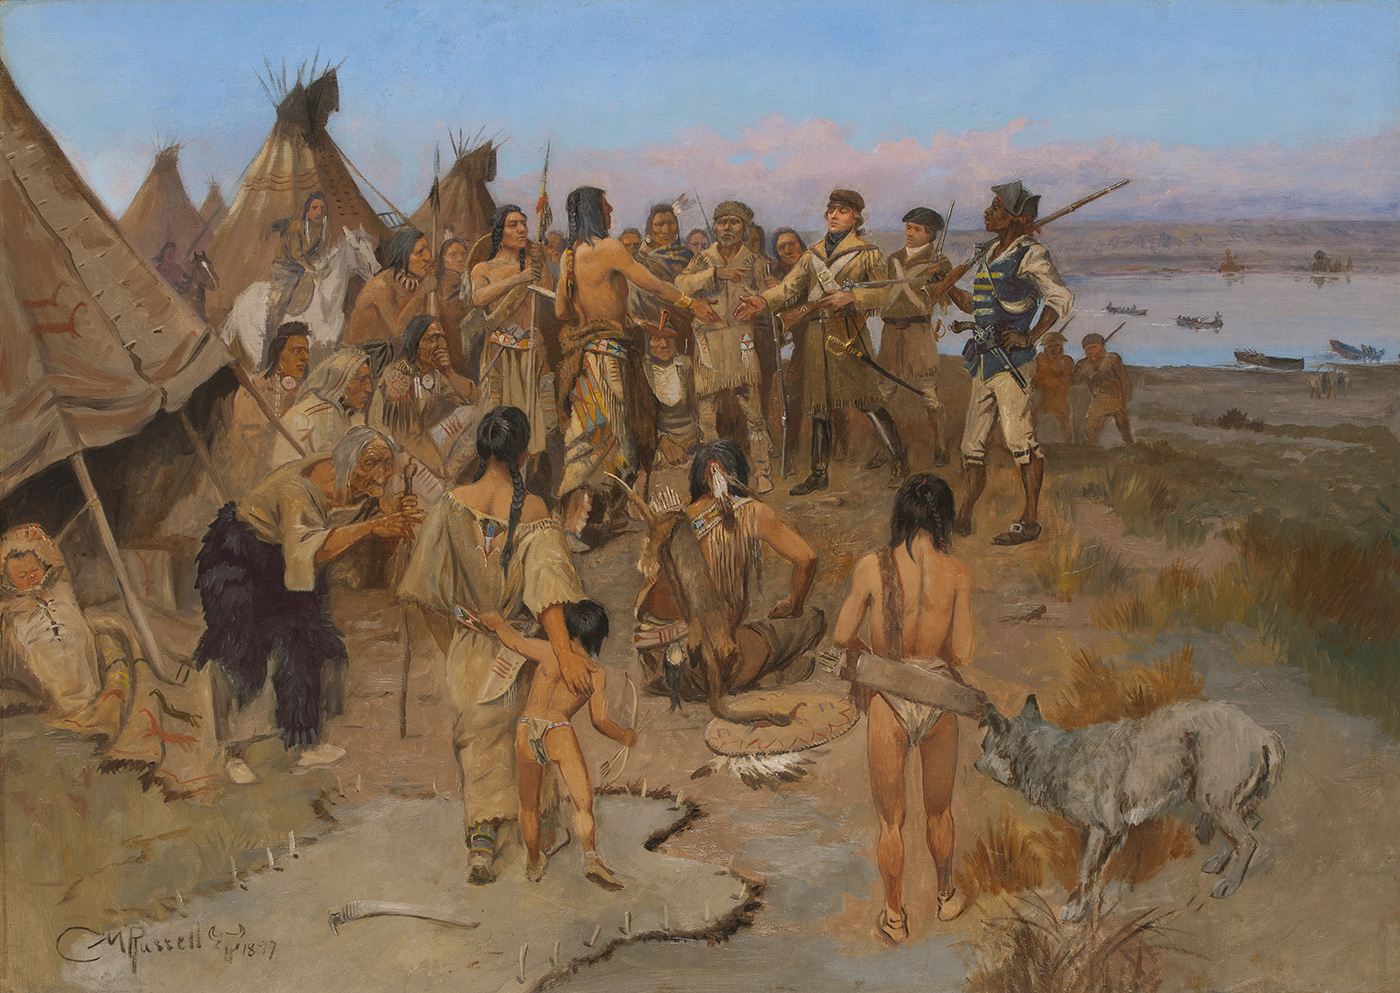 A large group of indigenous Americans are gathered and focused on the meeting of two men at the center, set before a distant river landscape.